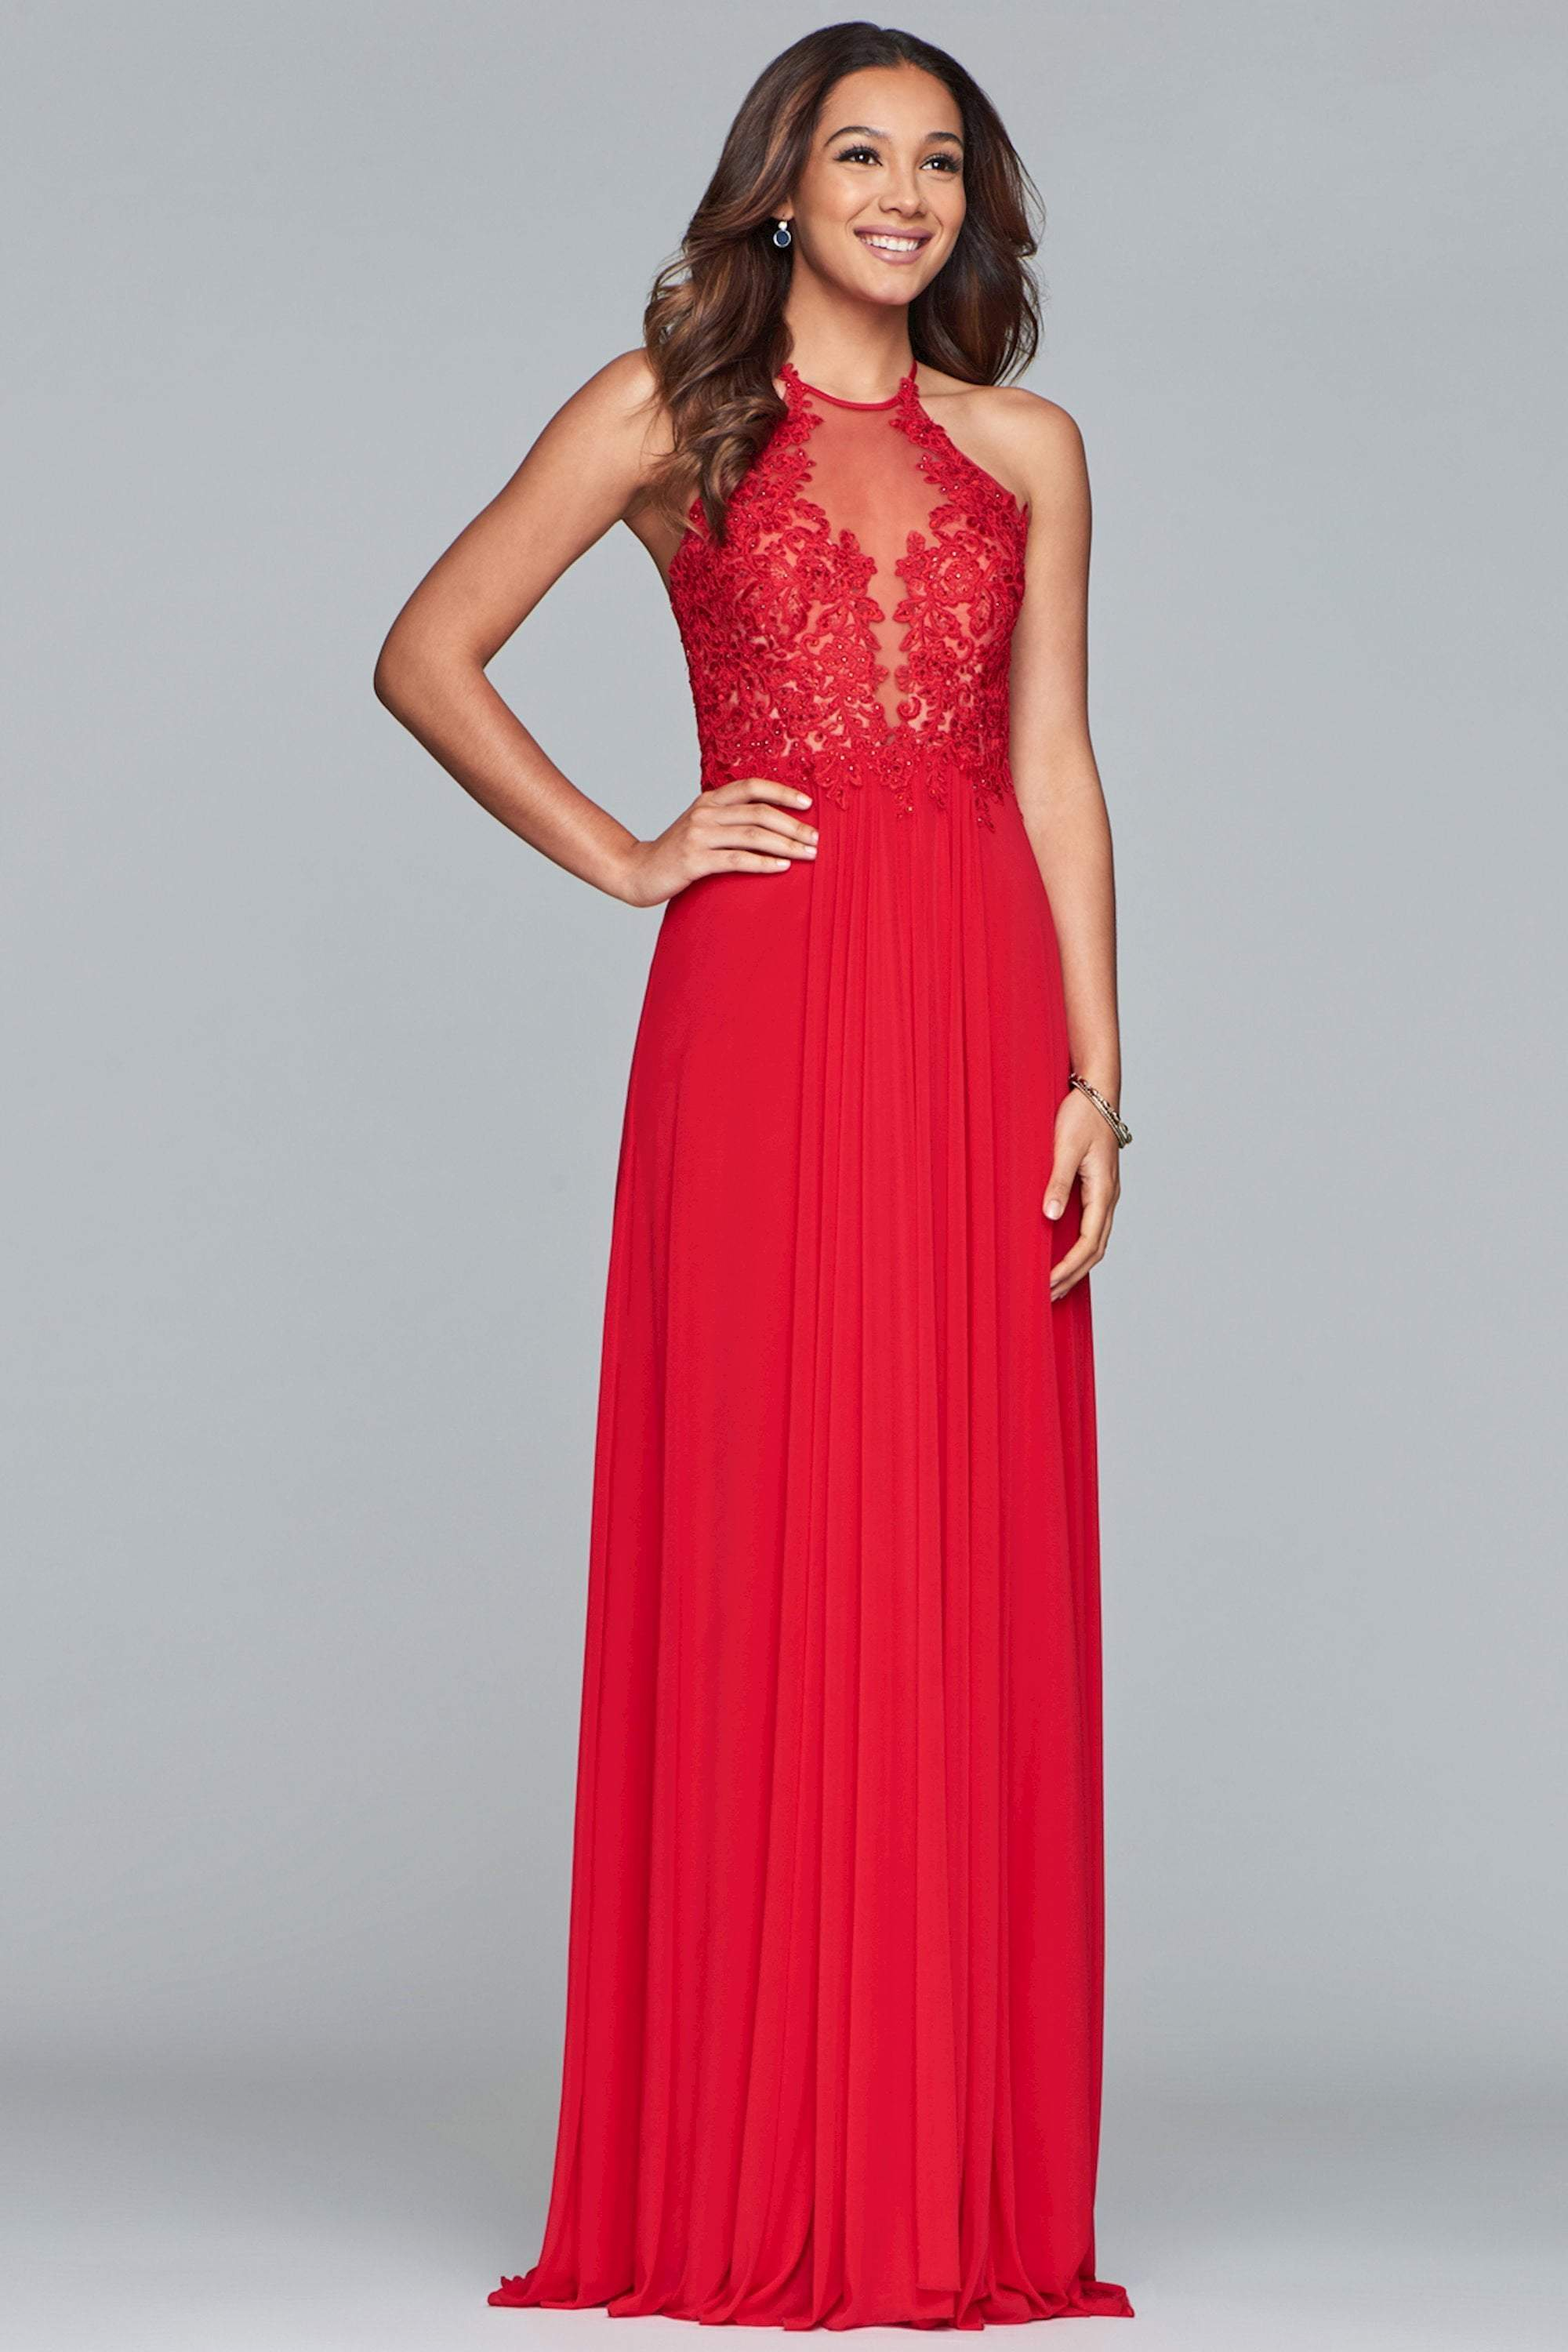 Faviana - Lace Appliqued Illusion Halter Evening Dress S10203  In Red